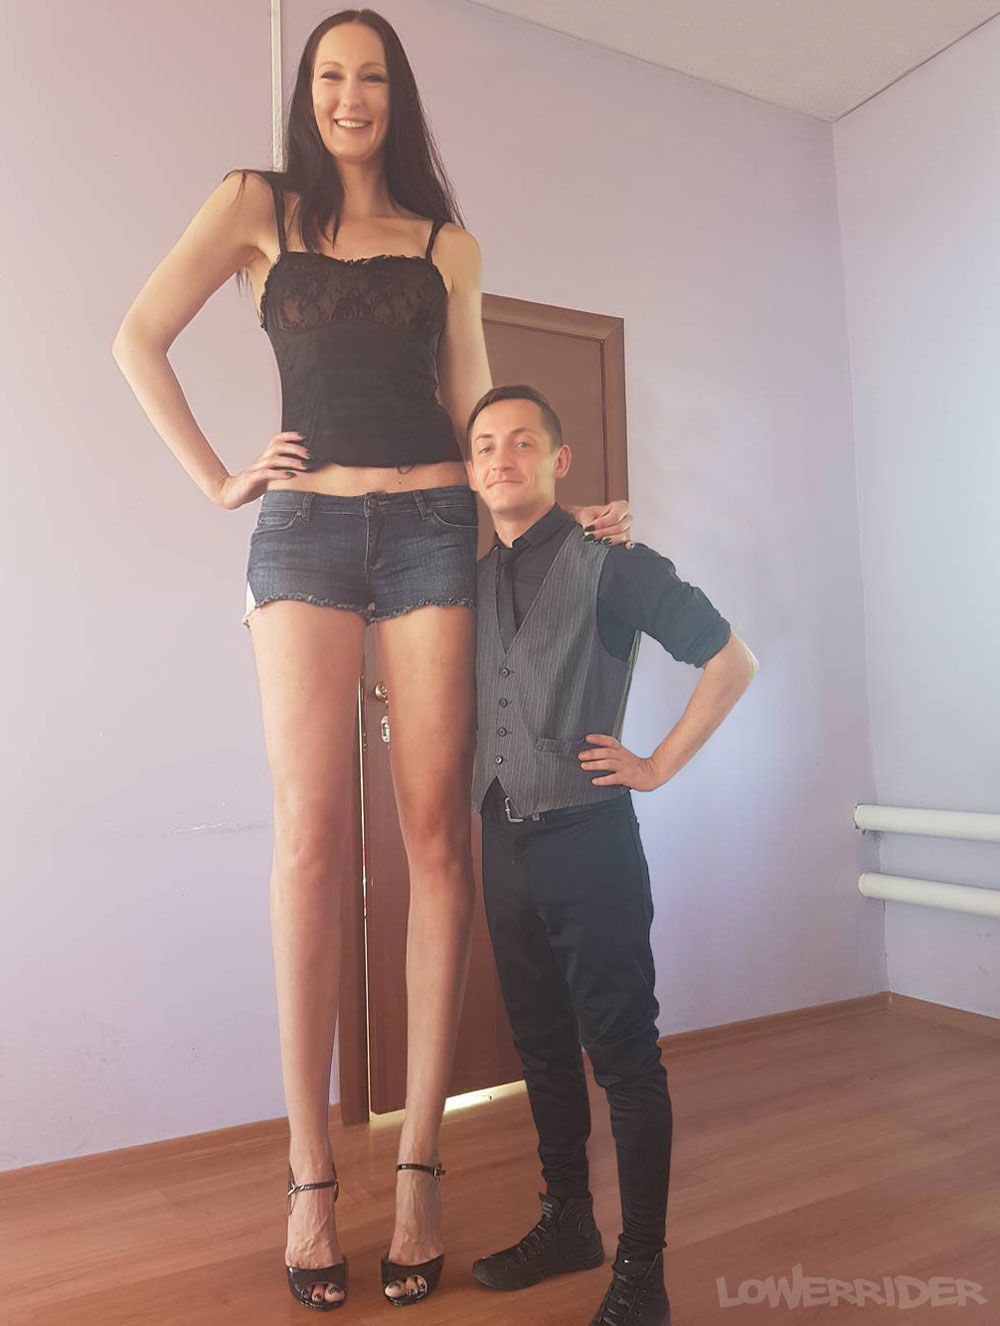 Dating a girl taller than you 2